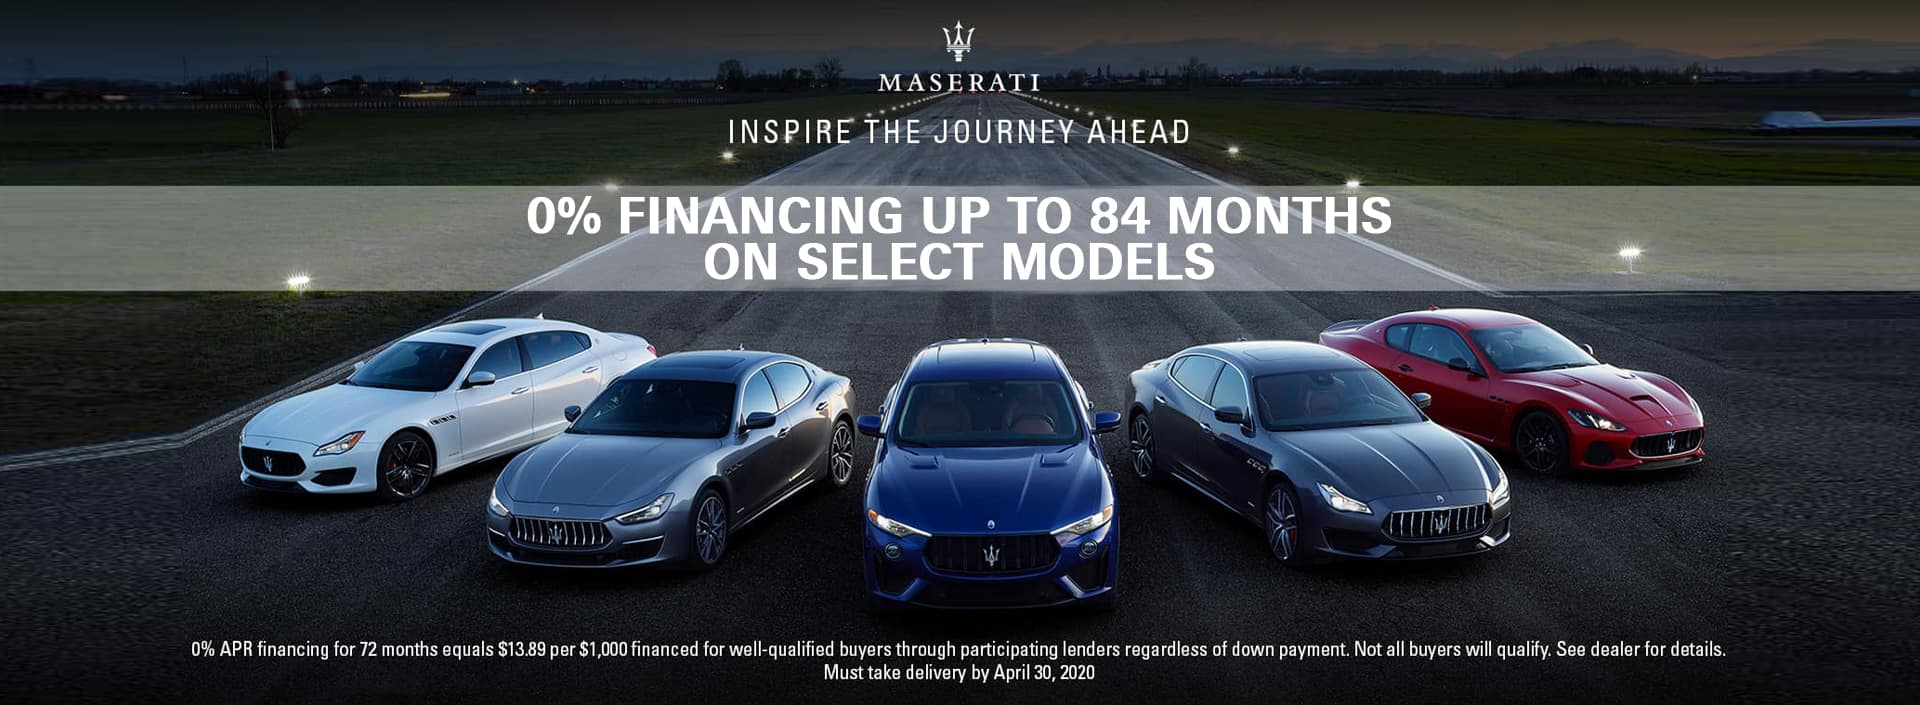 0 apr on maserati models